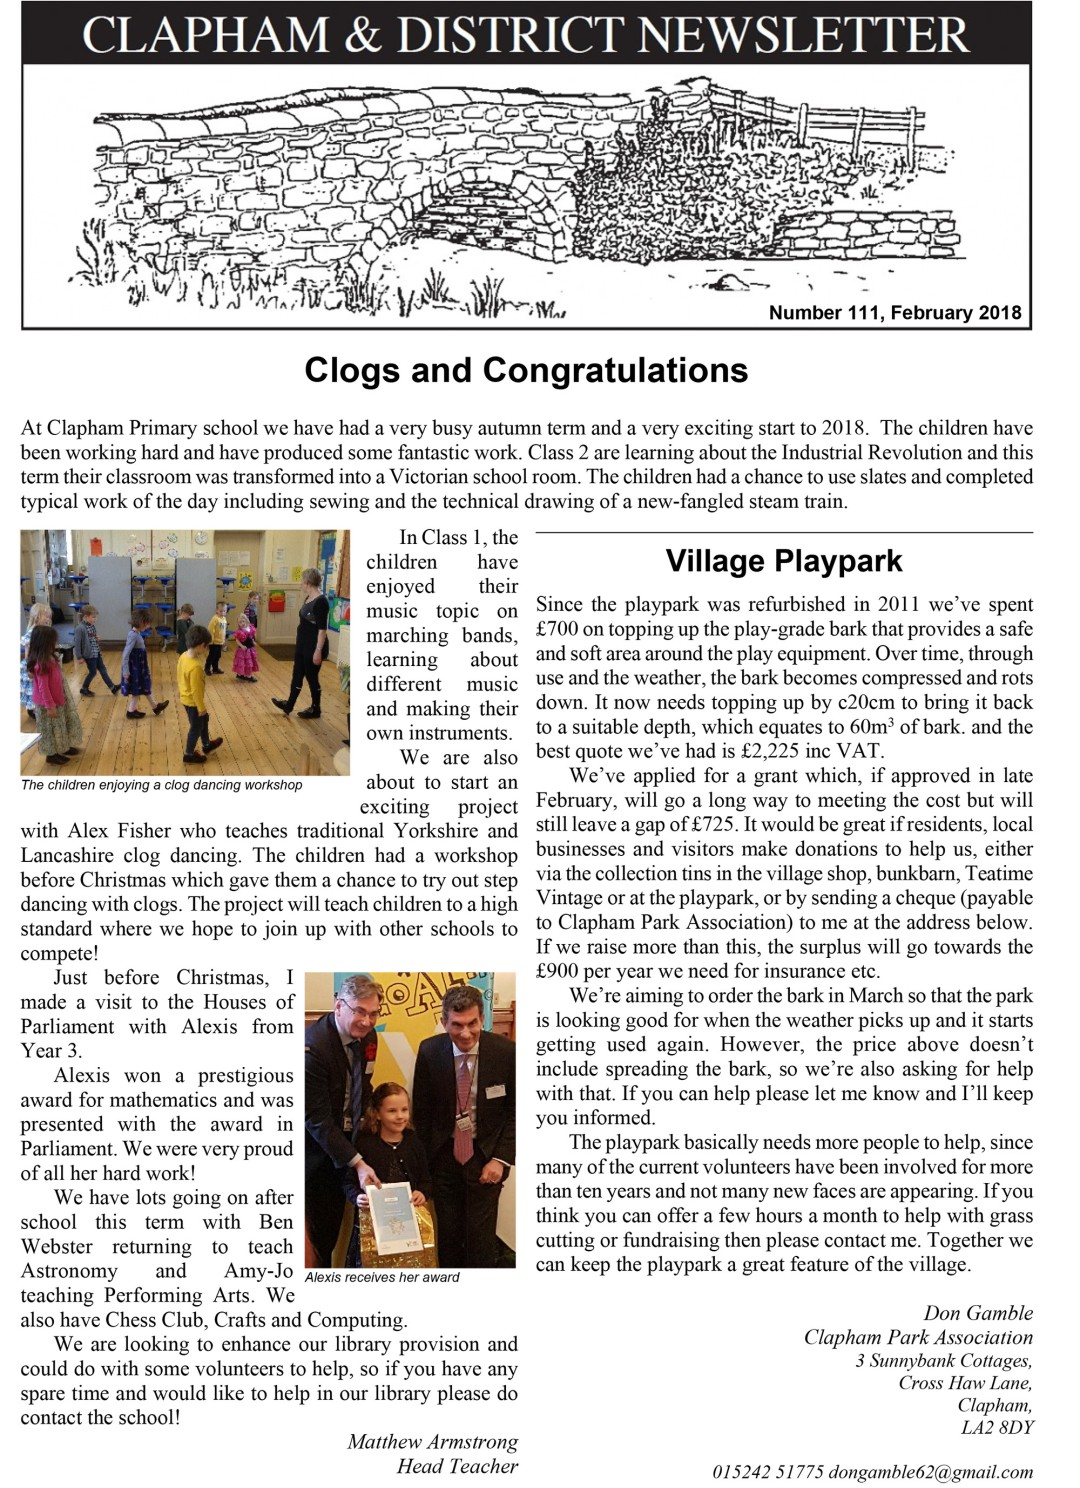 clapham-newsletter-111-February-2018-1